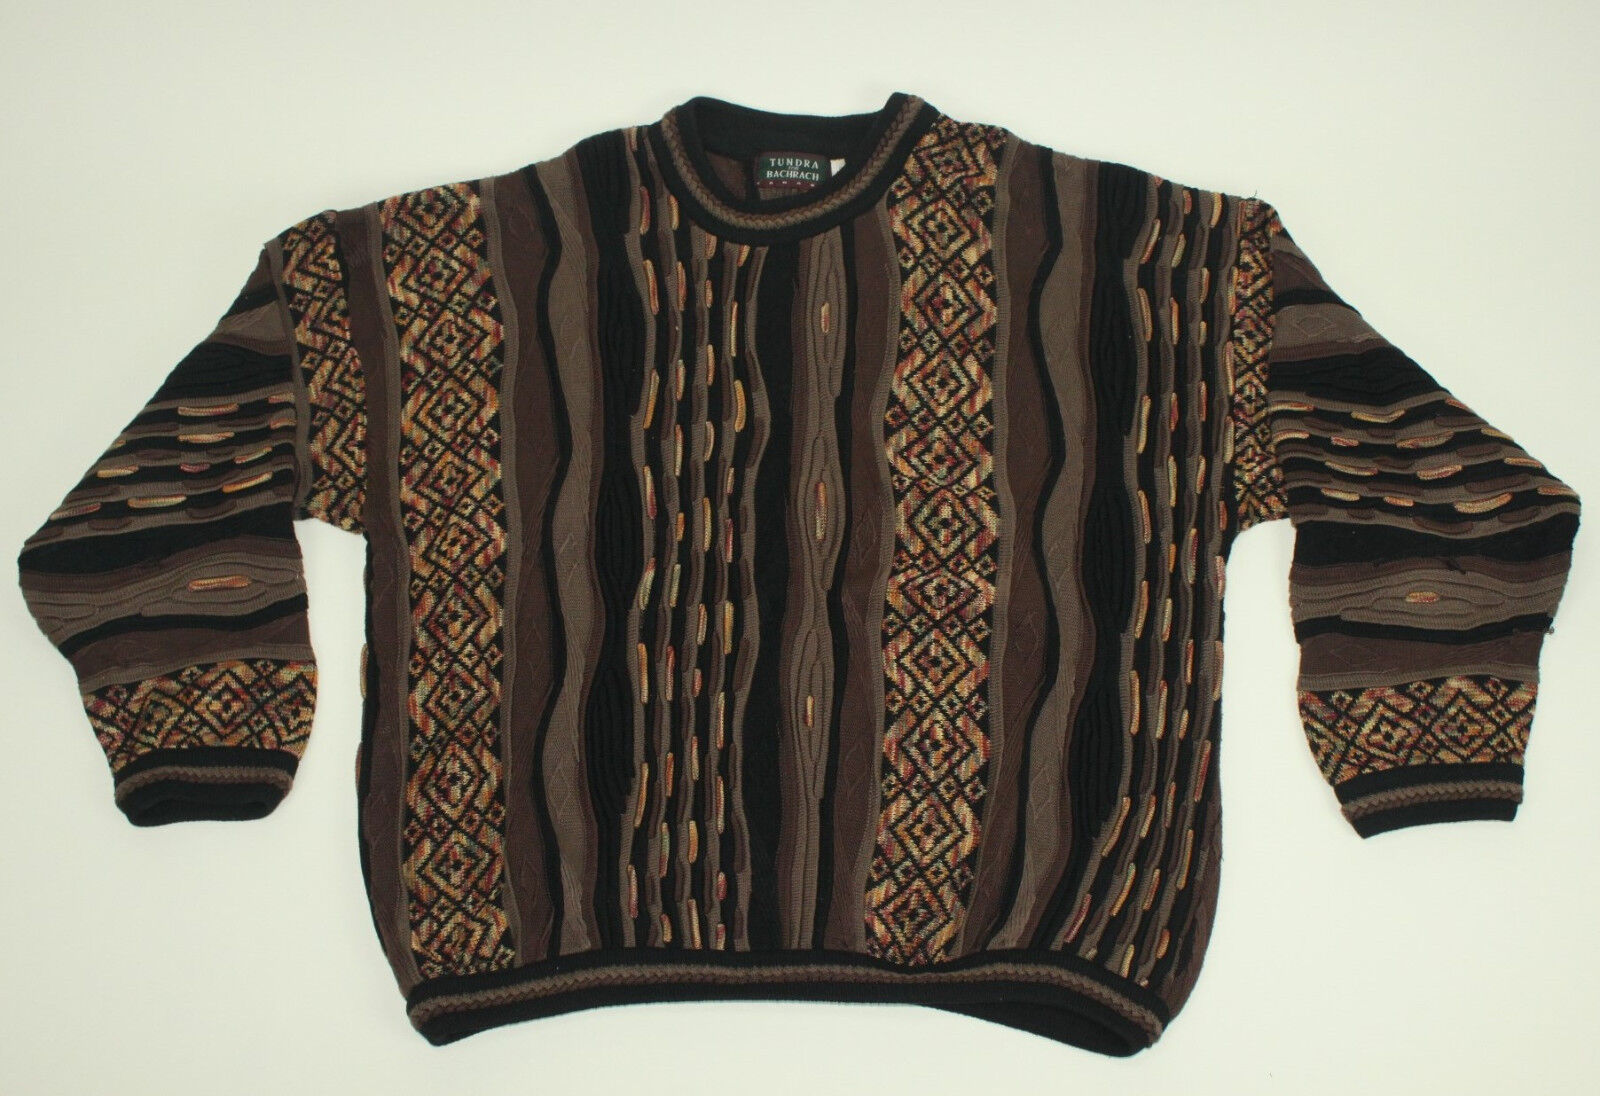 TUNDRA Canada Crazy Lines Sweater Large L Cosby Bachrach Braun Wild Cotton VTG